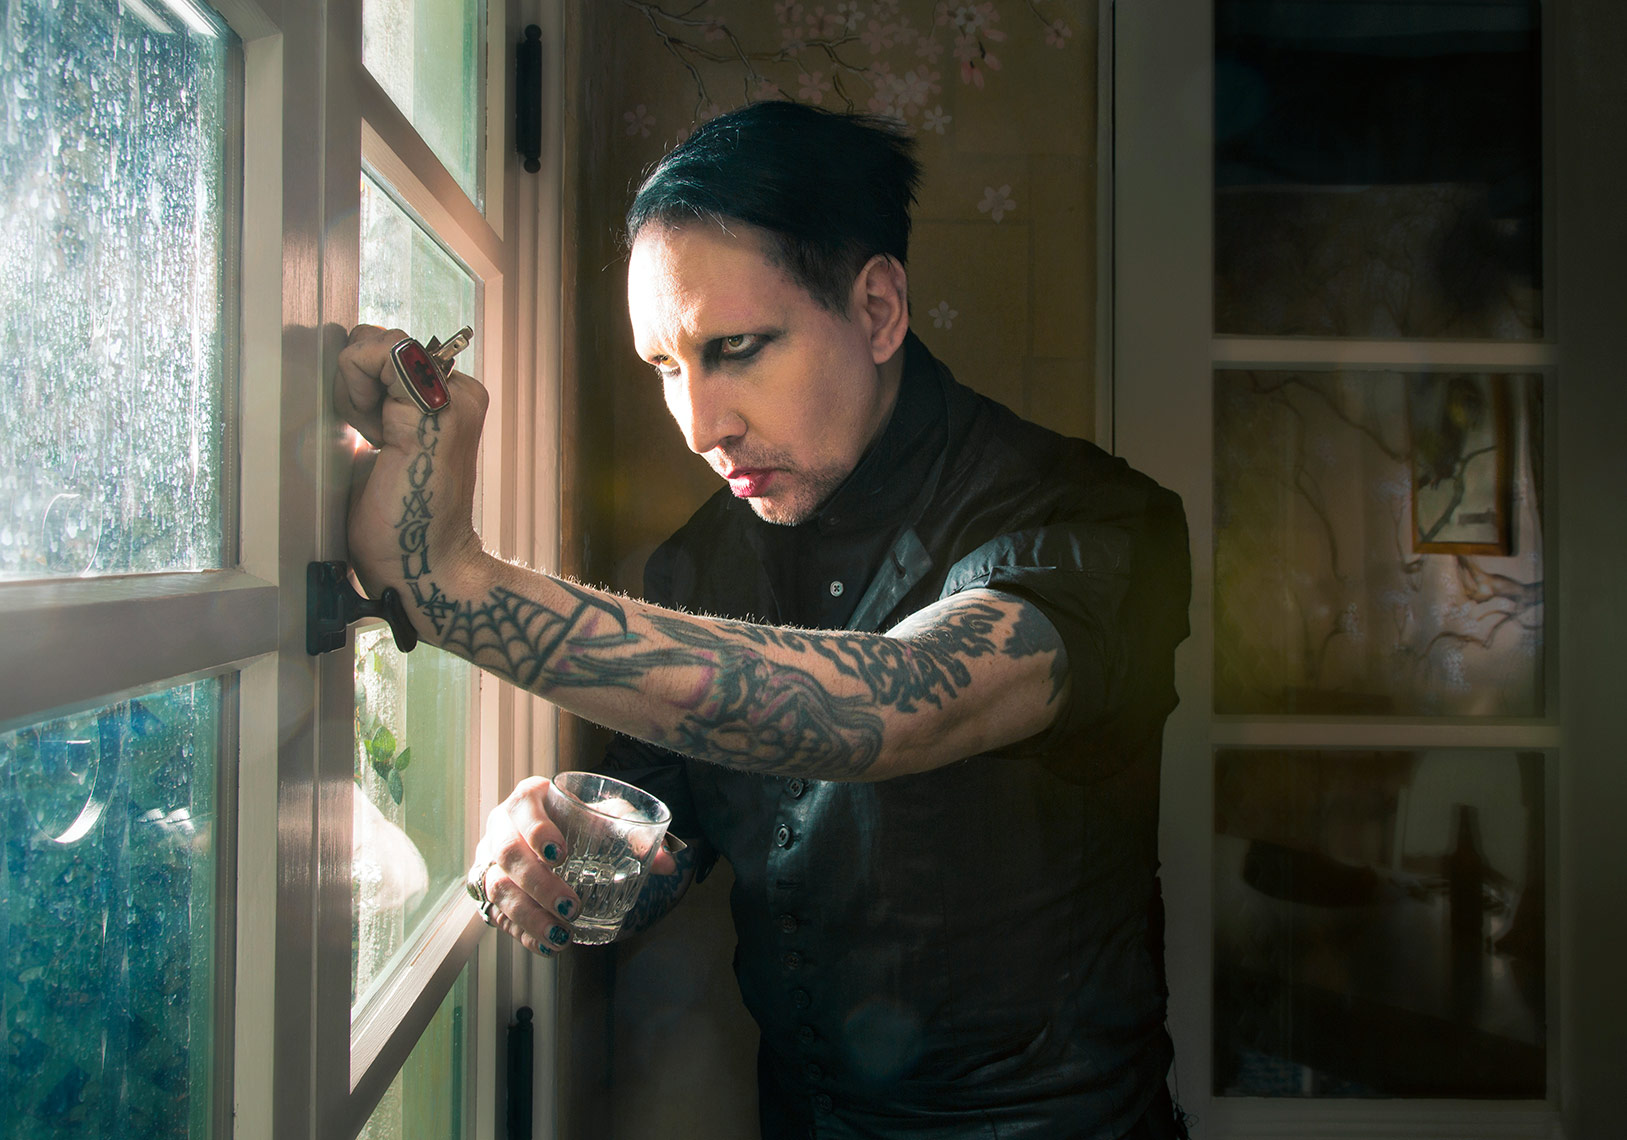 Marilyn_Manson_window_WEB